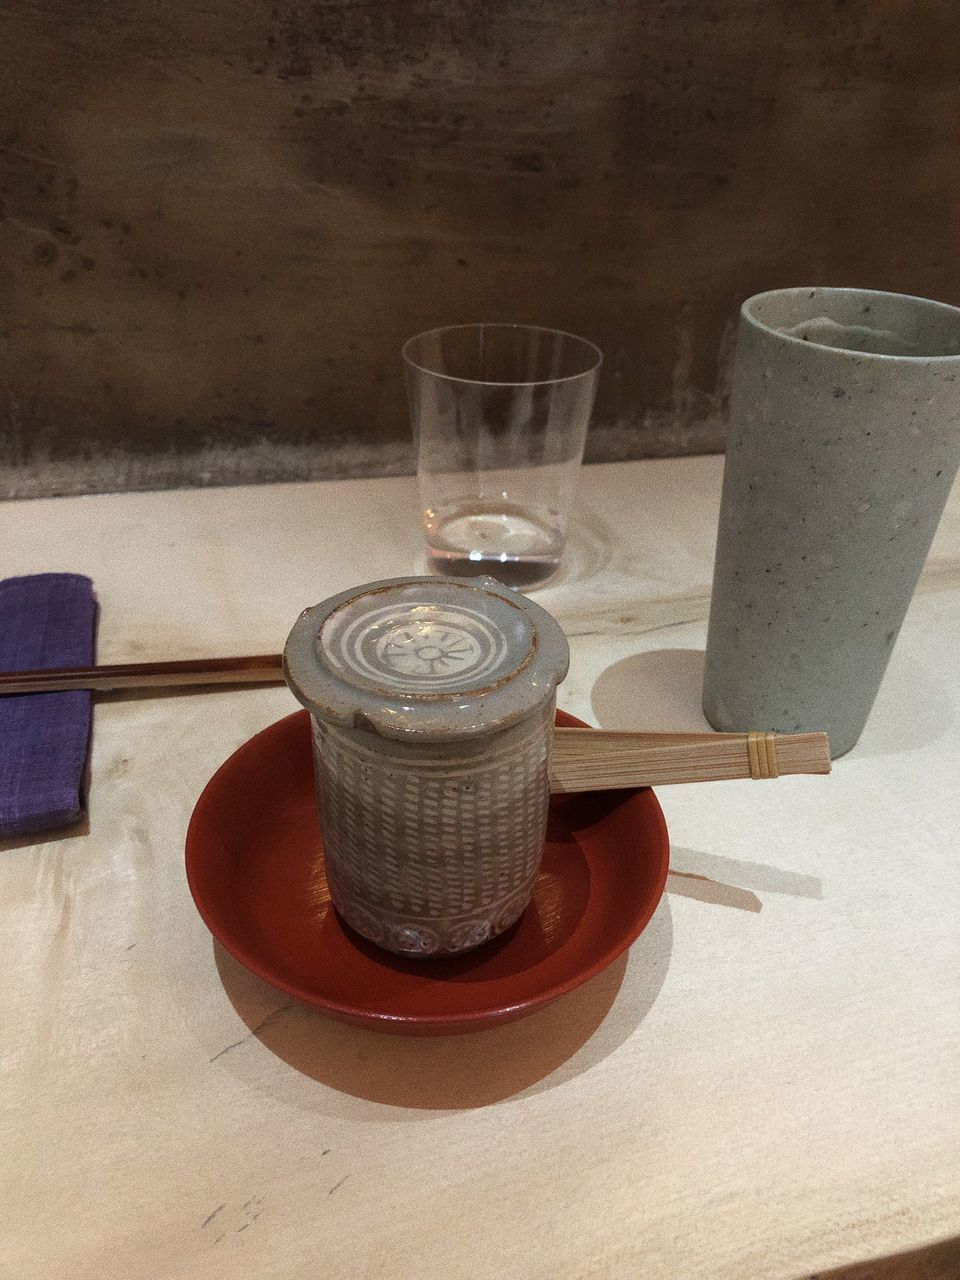 drink, refreshment, food and drink, table, glass, drinking glass, still life, household equipment, no people, indoors, cup, freshness, coffee, coffee - drink, mug, food, wood - material, crockery, water, non-alcoholic beverage, latte